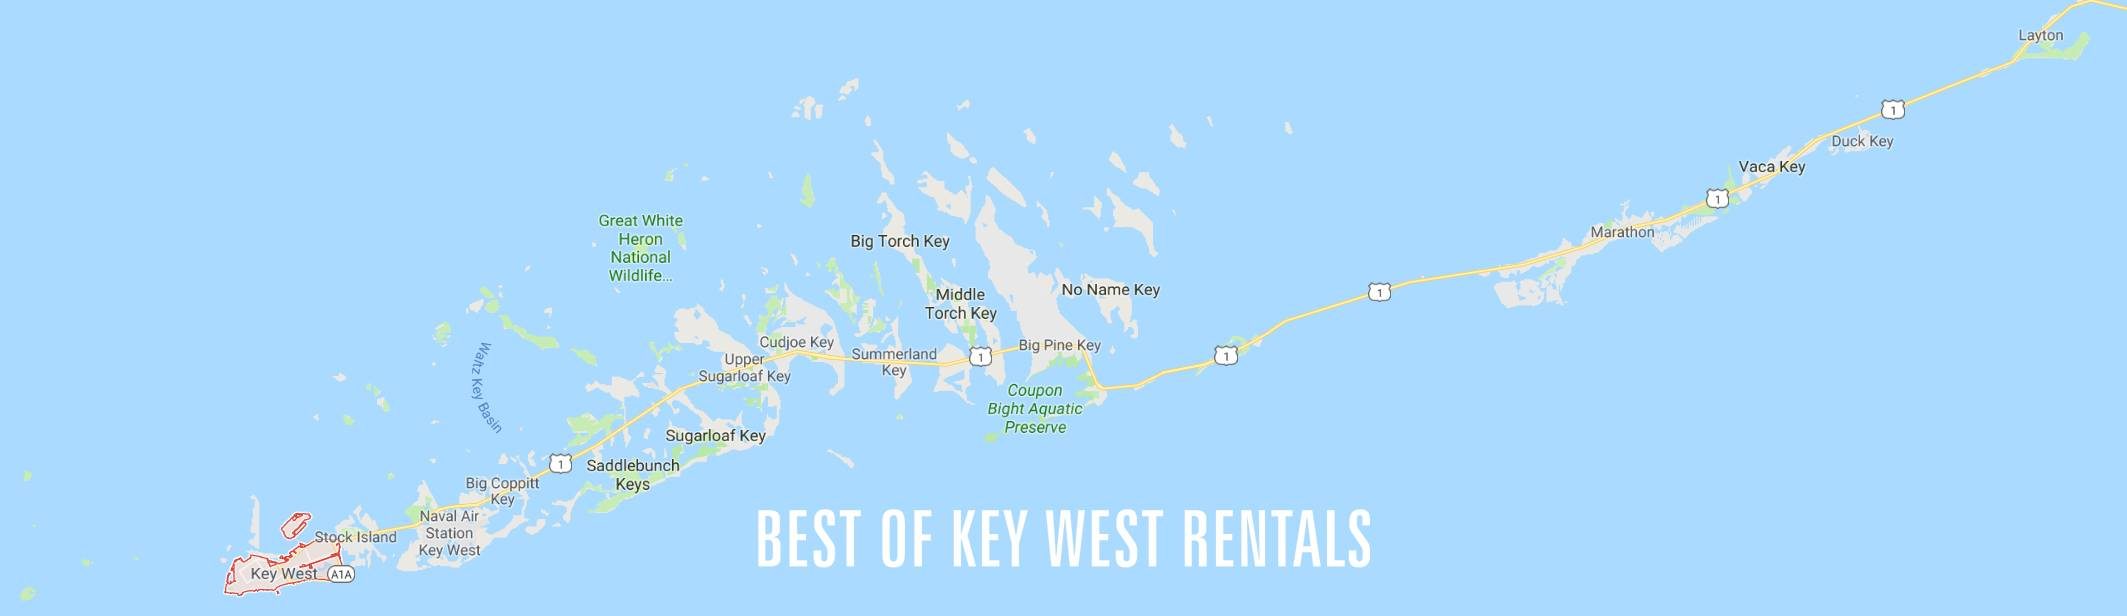 Key West Neighborhood Map | Best Of Key West Rentals Key West On Map on west palm on map, florida on map, orange city on map, north miami beach on map, bay city on map, pensicola on map, vigo on map, tamarac on map, cedar key on map, lompoc on map, bethel on map, frangista beach on map, grayton beach on map, seaside on map, leon county on map, epworth on map, lighthouse point on map, kailua-kona on map, old town on map, torres del paine national park on map,